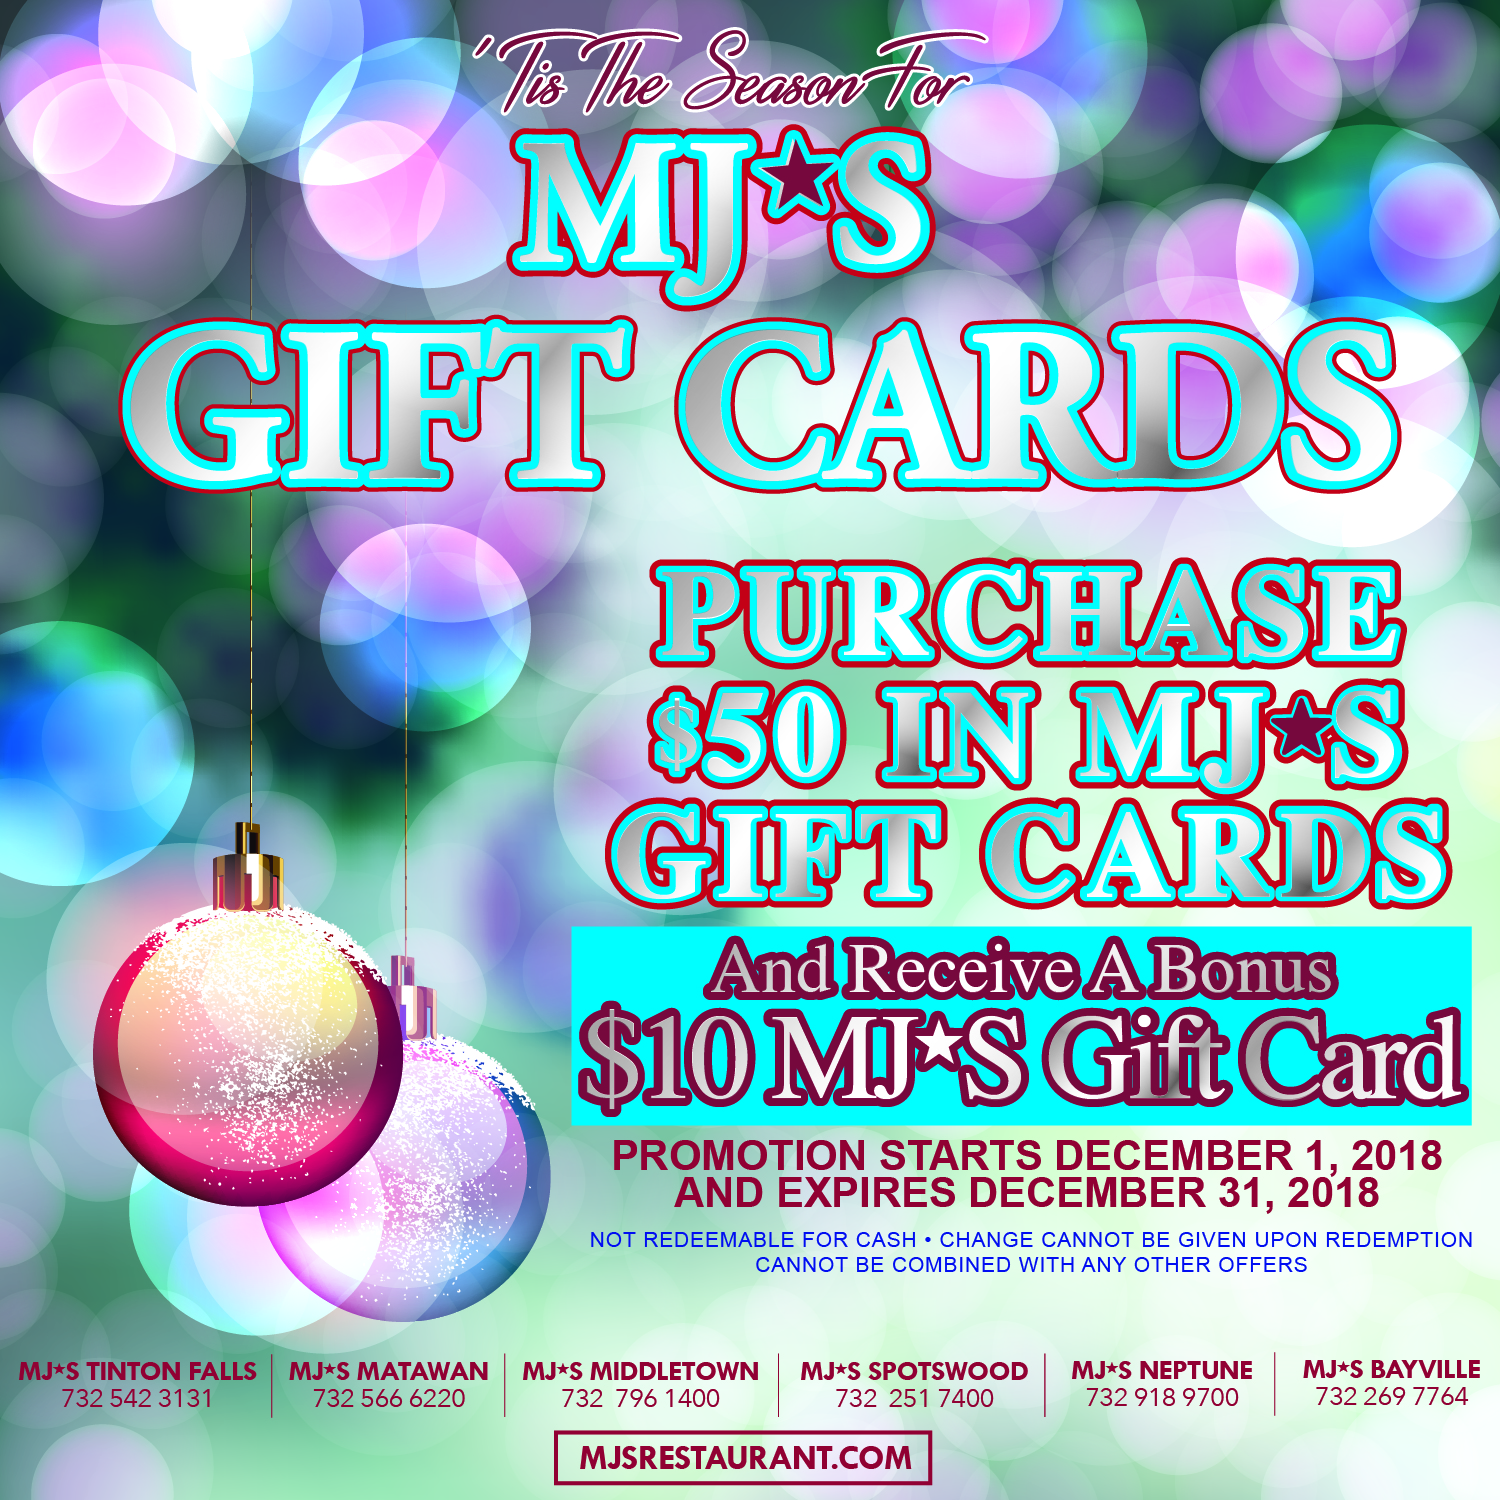 MJ's Gift Cards for Purchase